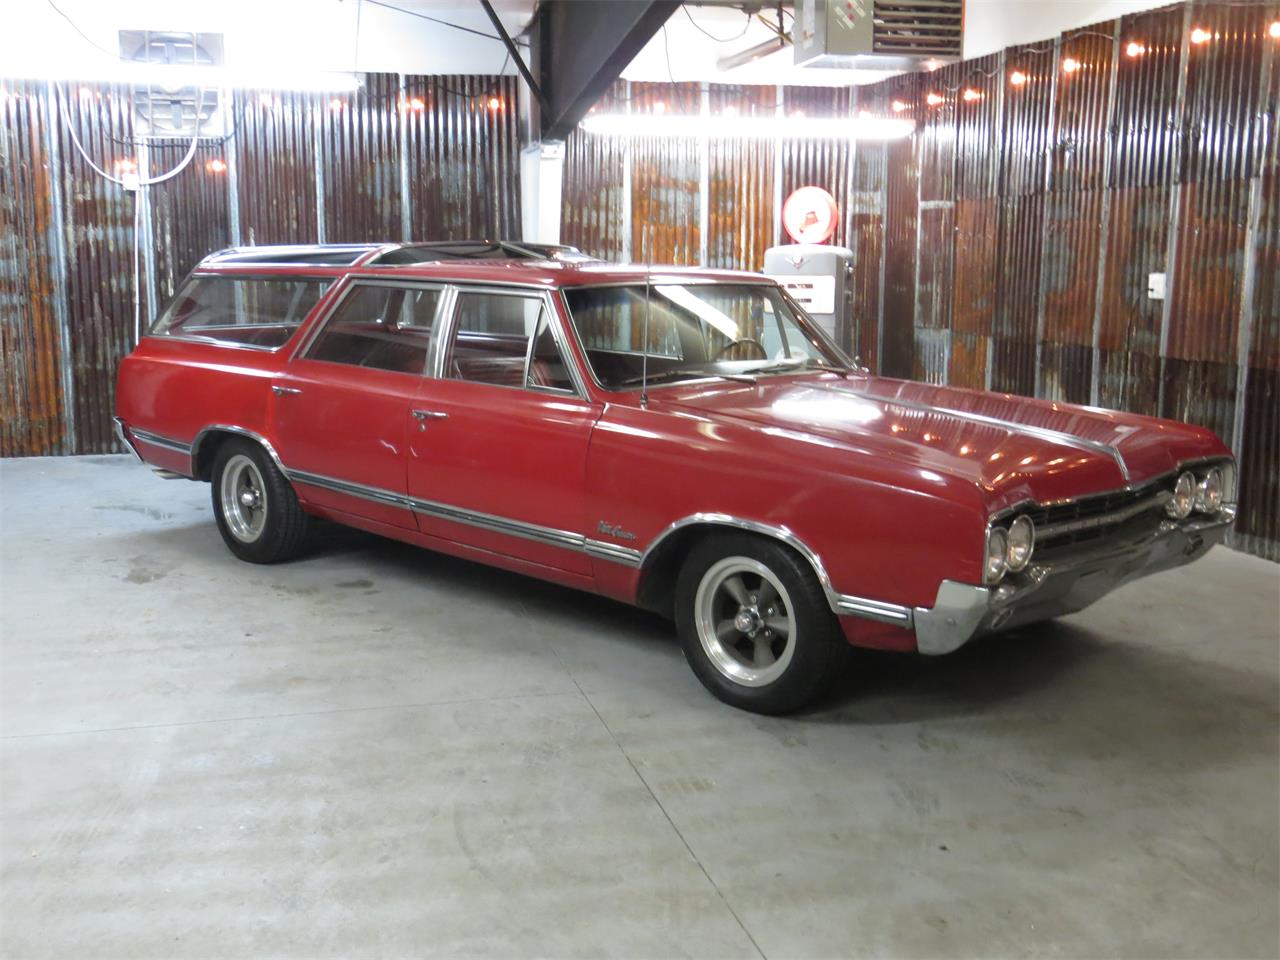 For Sale: 1965 Oldsmobile Vista Cruiser in Redmond, Oregon